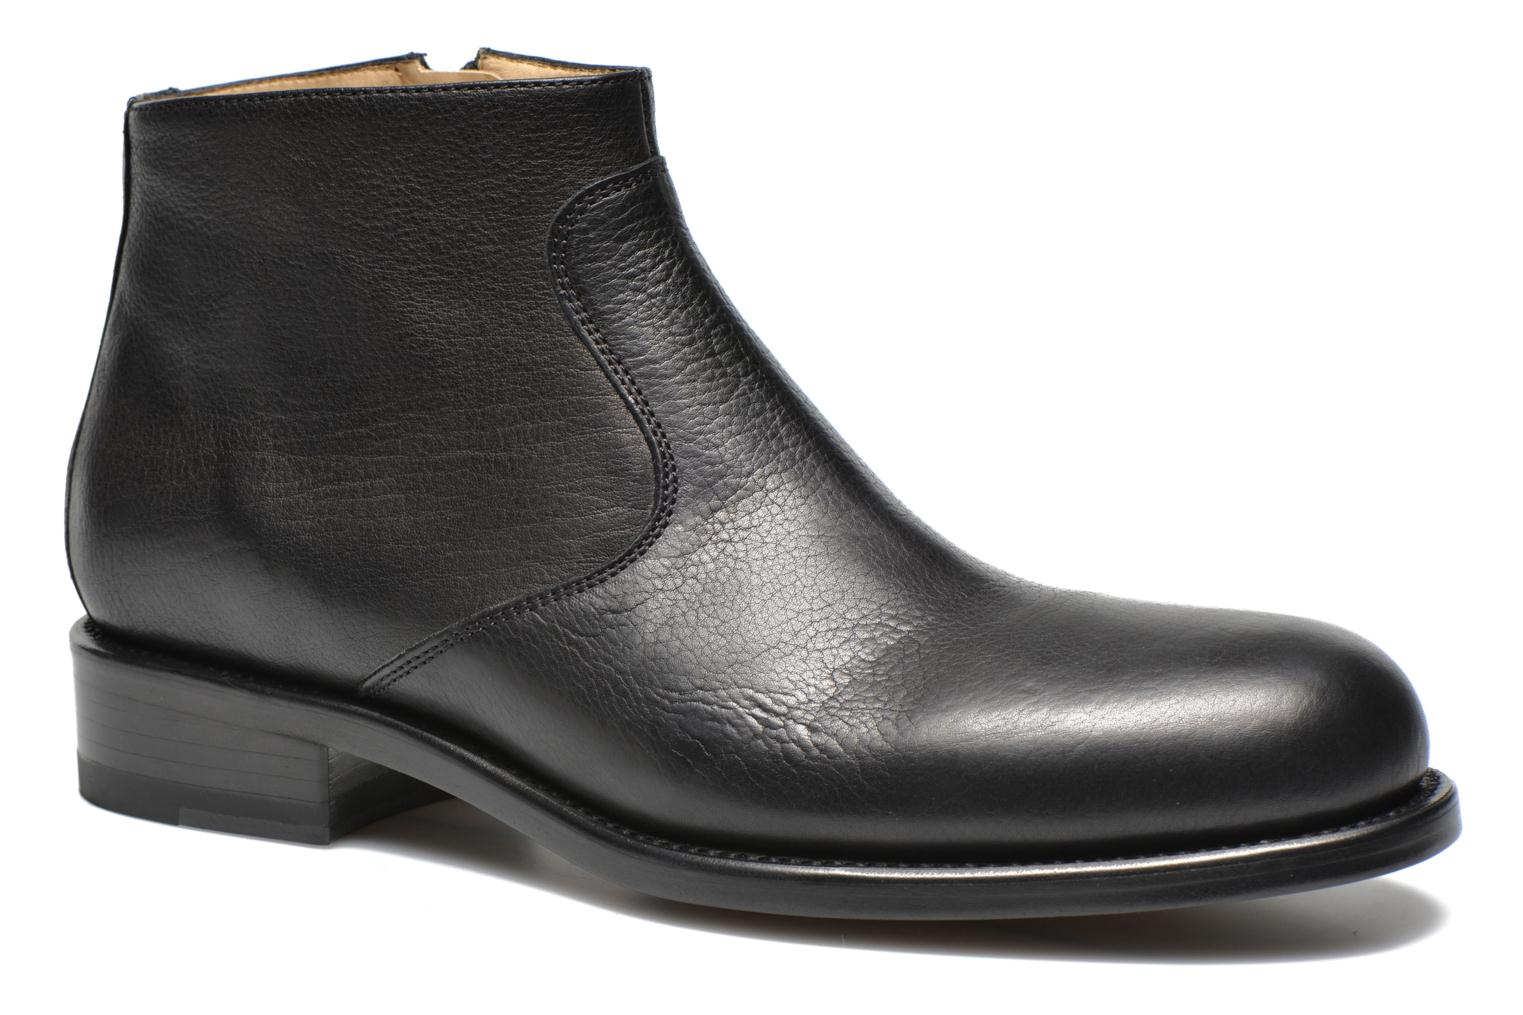 Nash zip boot Brado Noir